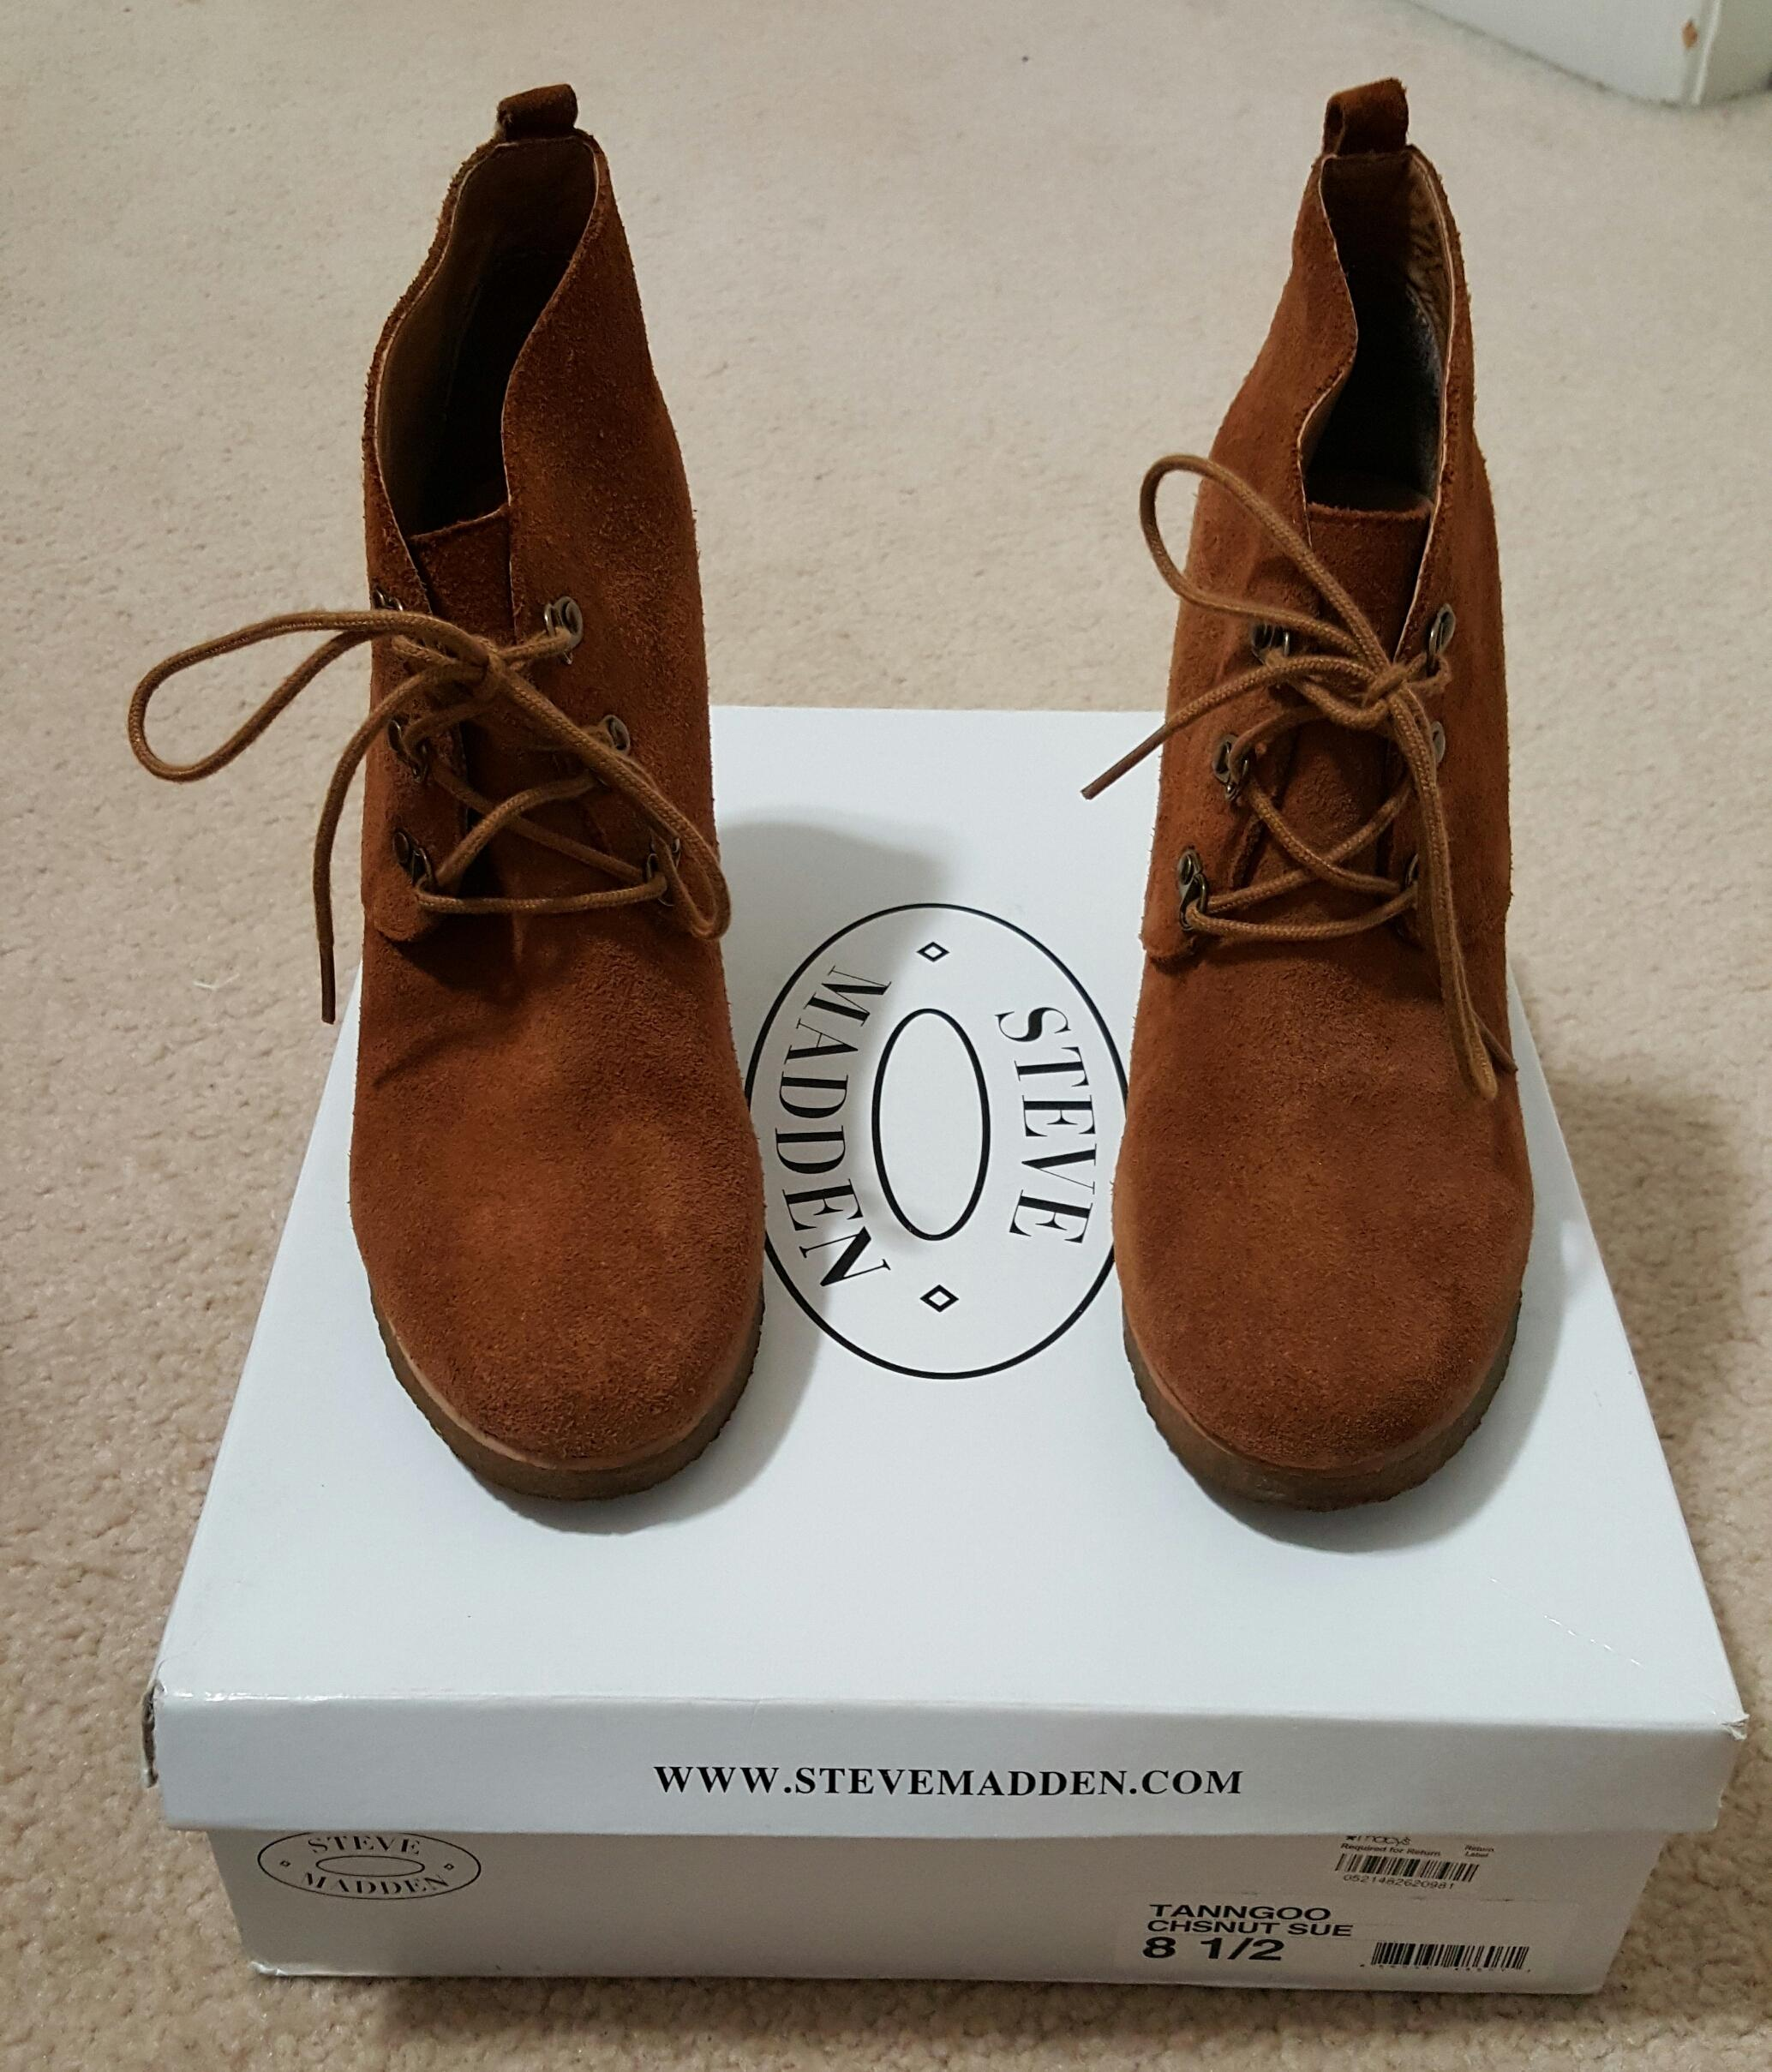 Steve Madden Chestnut (Suede) Tanngoo Boots/Booties